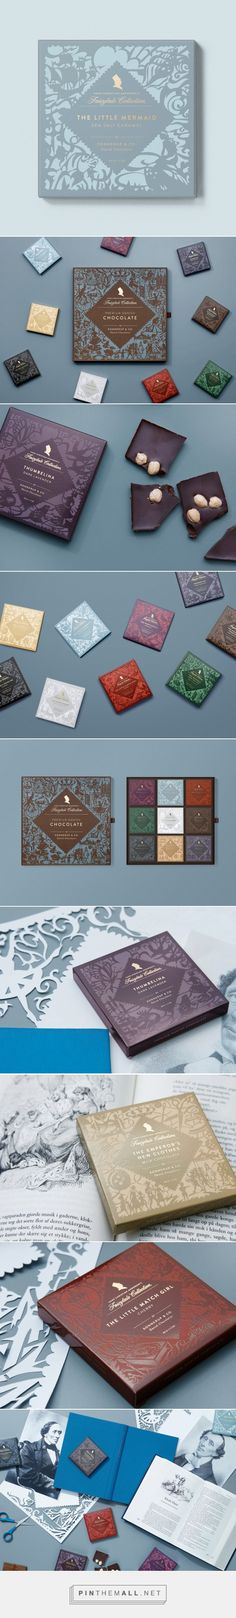 This Gorgeous Chocolate Collection is What Fairytales Are Made Of — The Dieline | Packaging & Branding Design & Innovation News - created via https://pinthemall.net